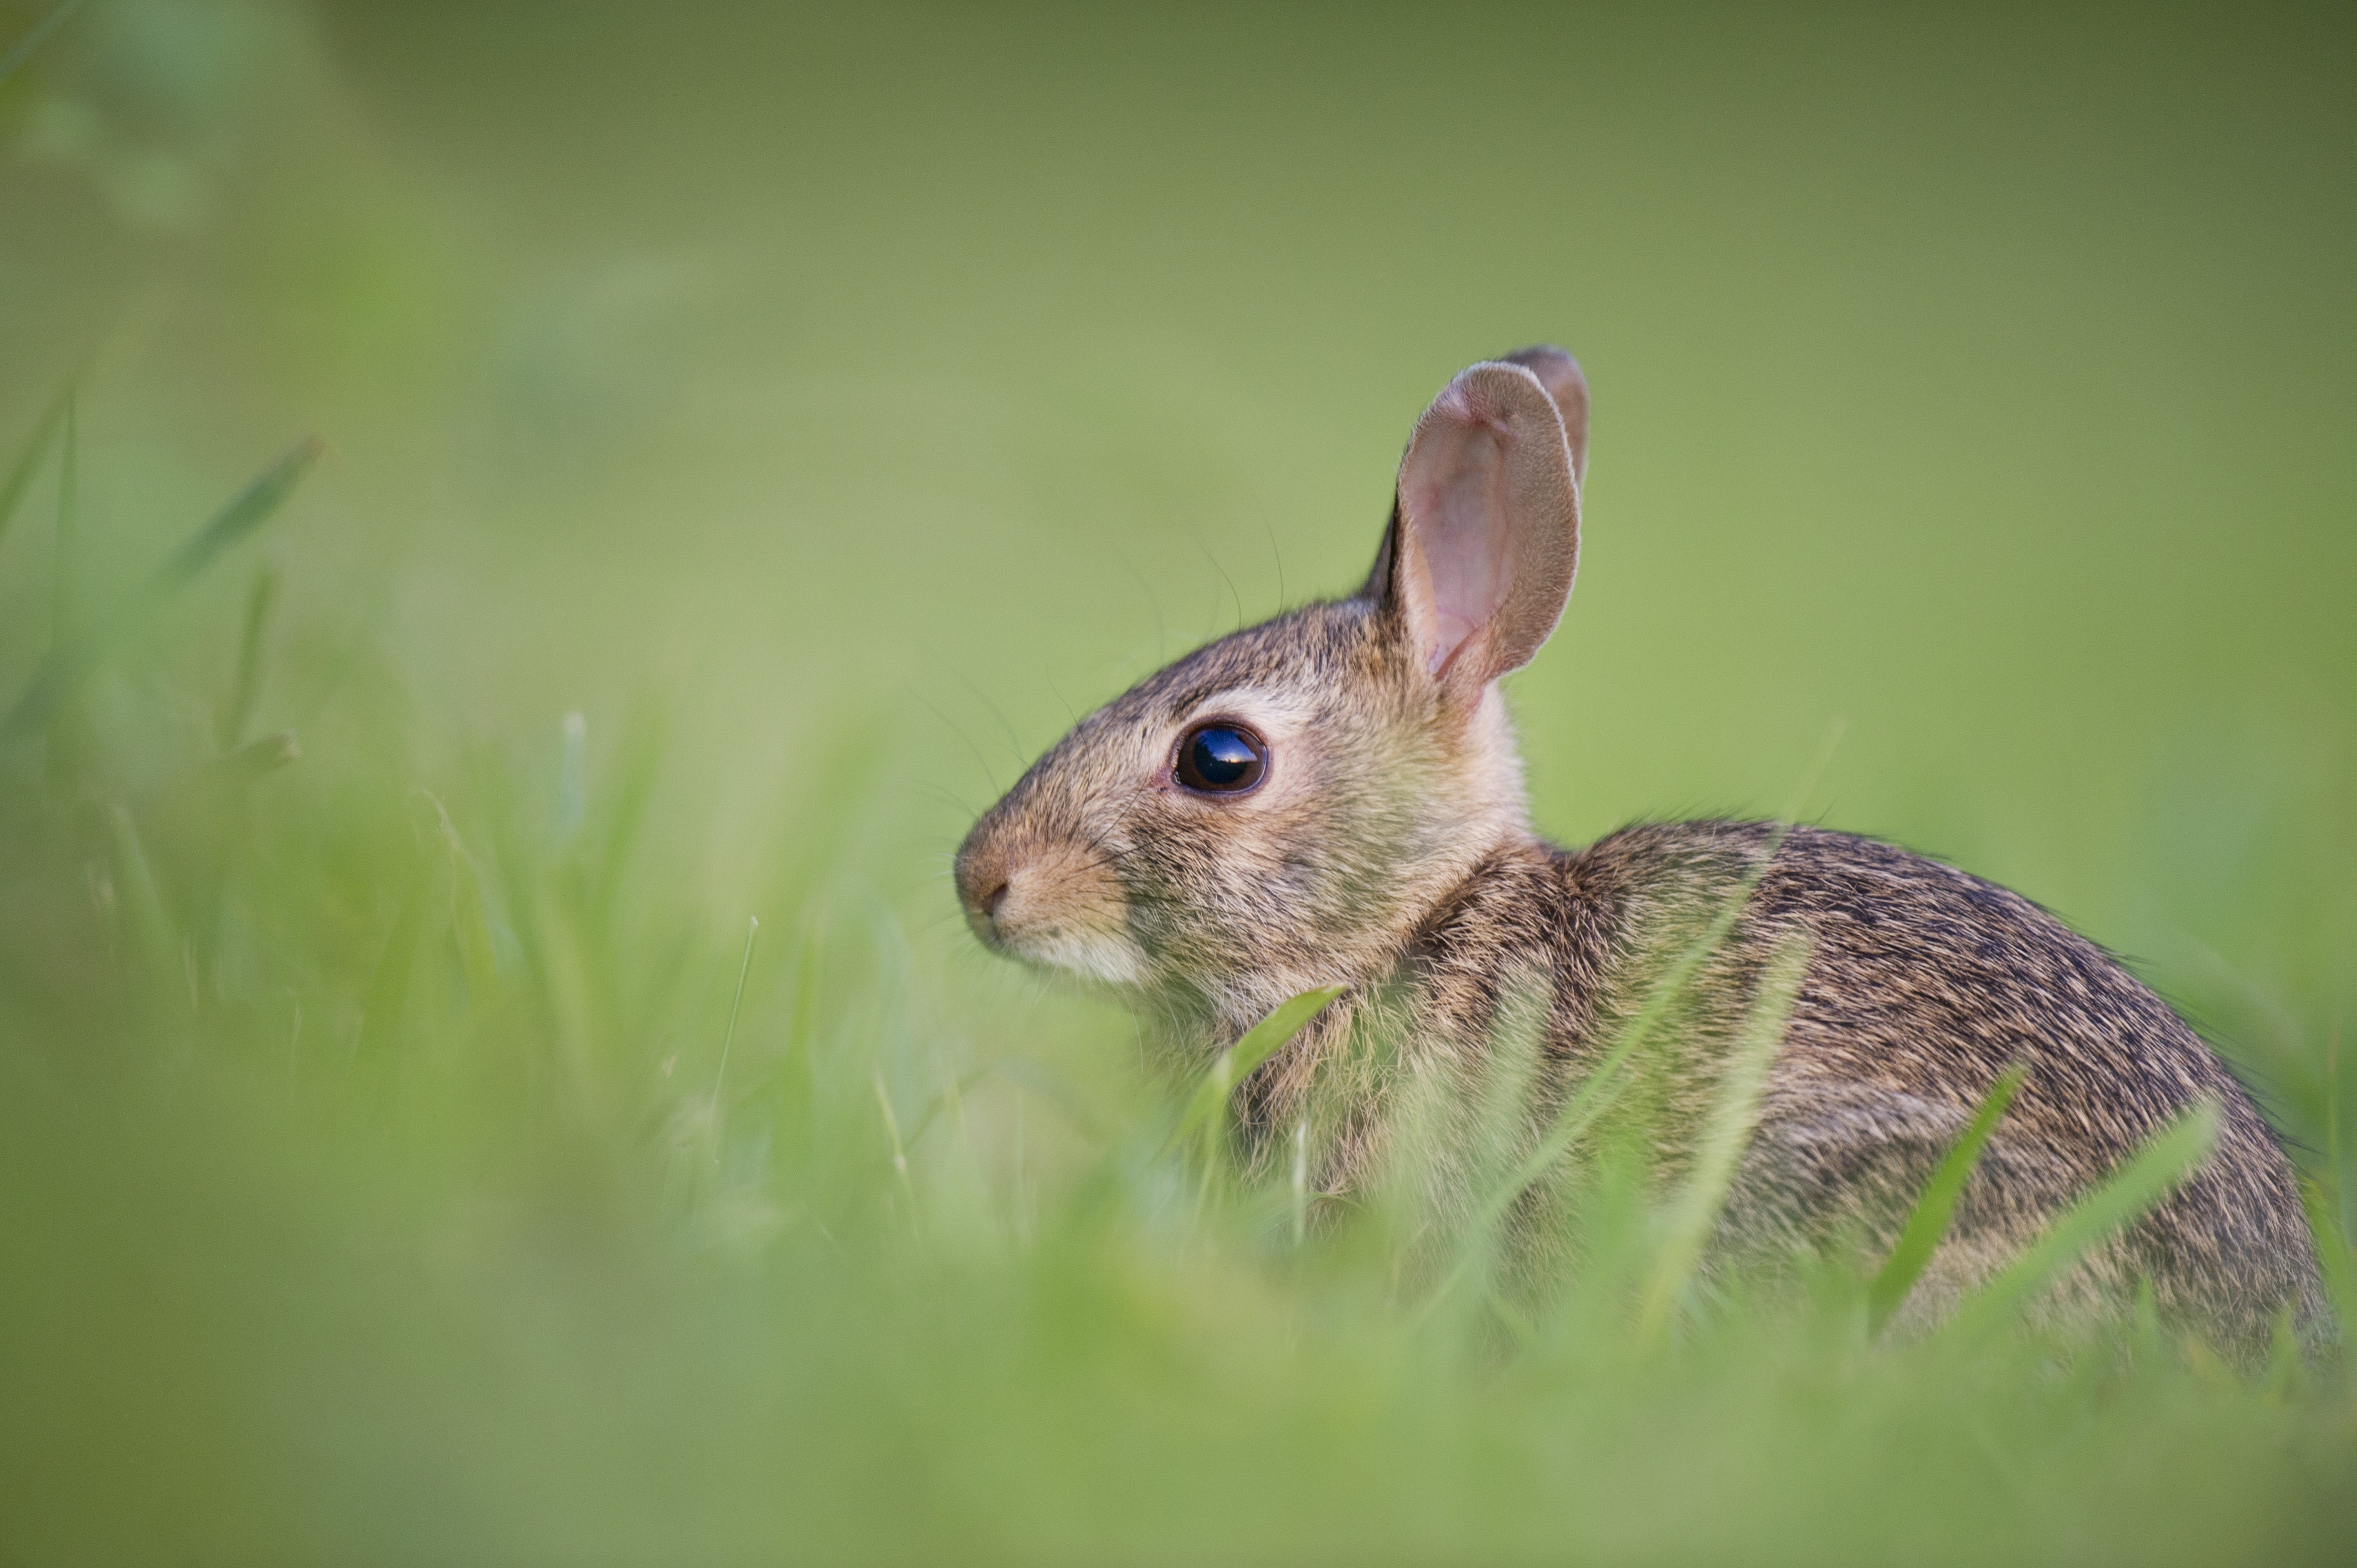 A side view of a rabbit in a grassy knoll